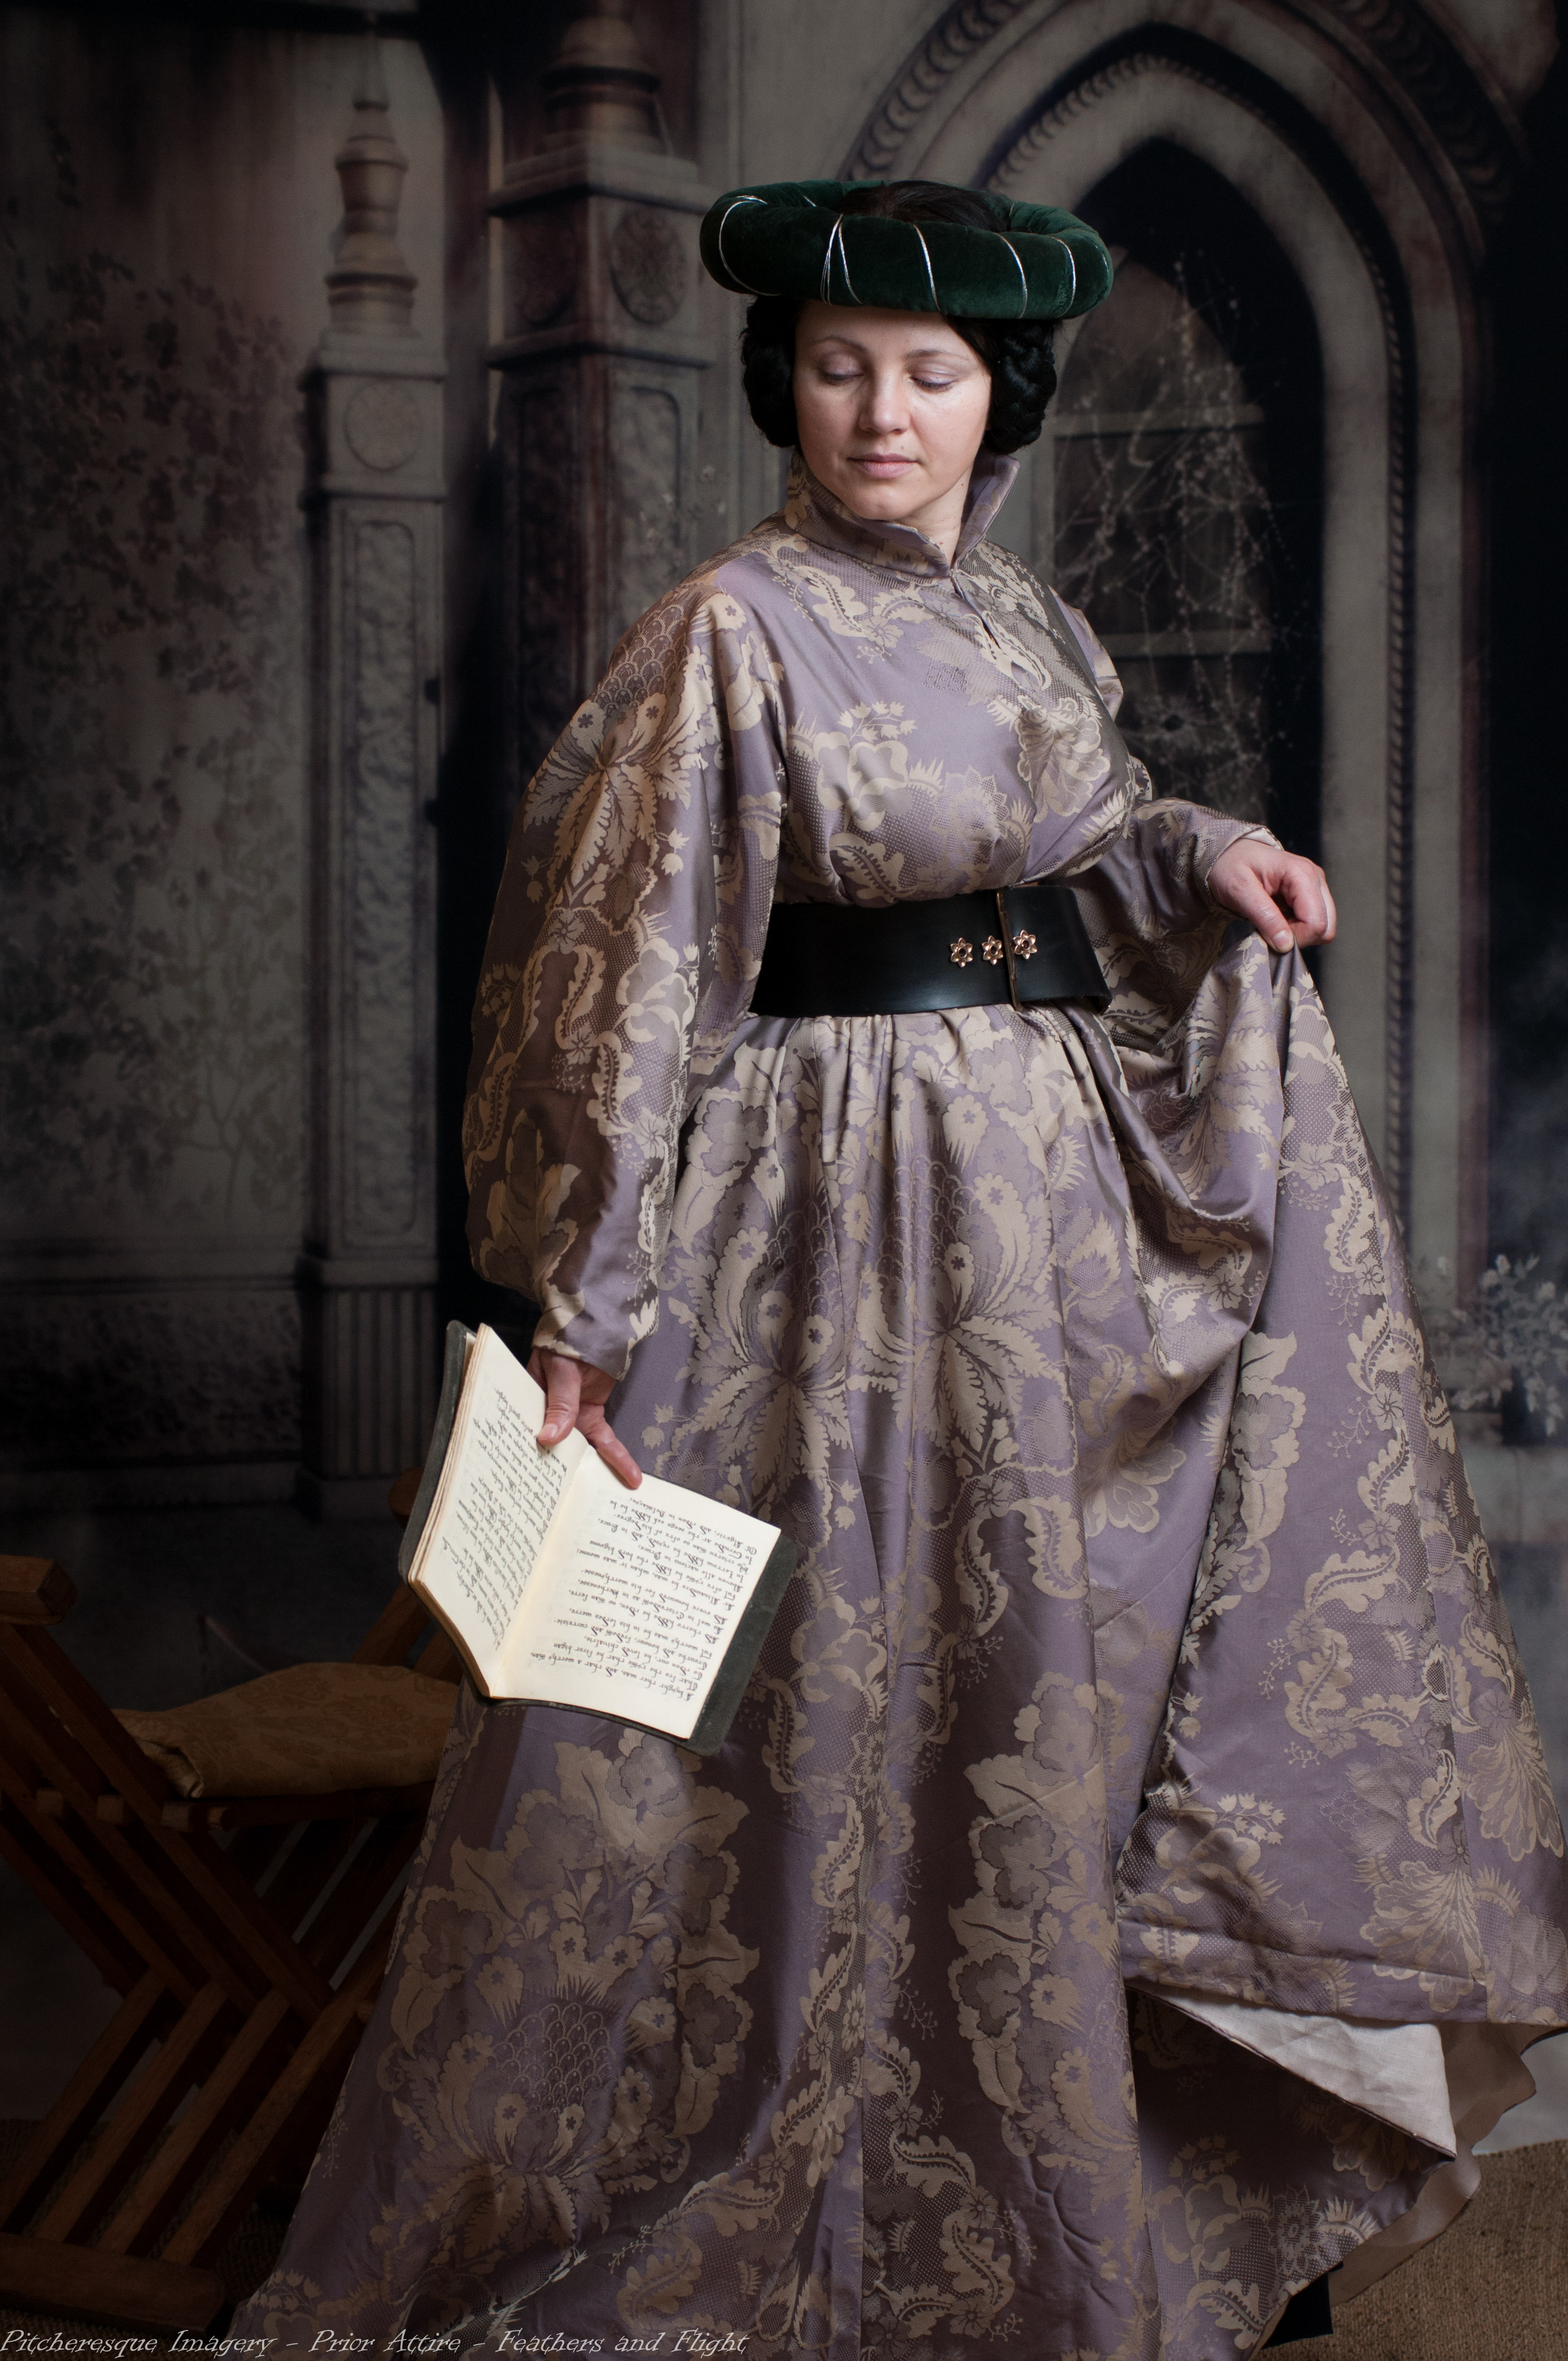 Posh English Words The Most Common Mistakes In Historical Costuming Re